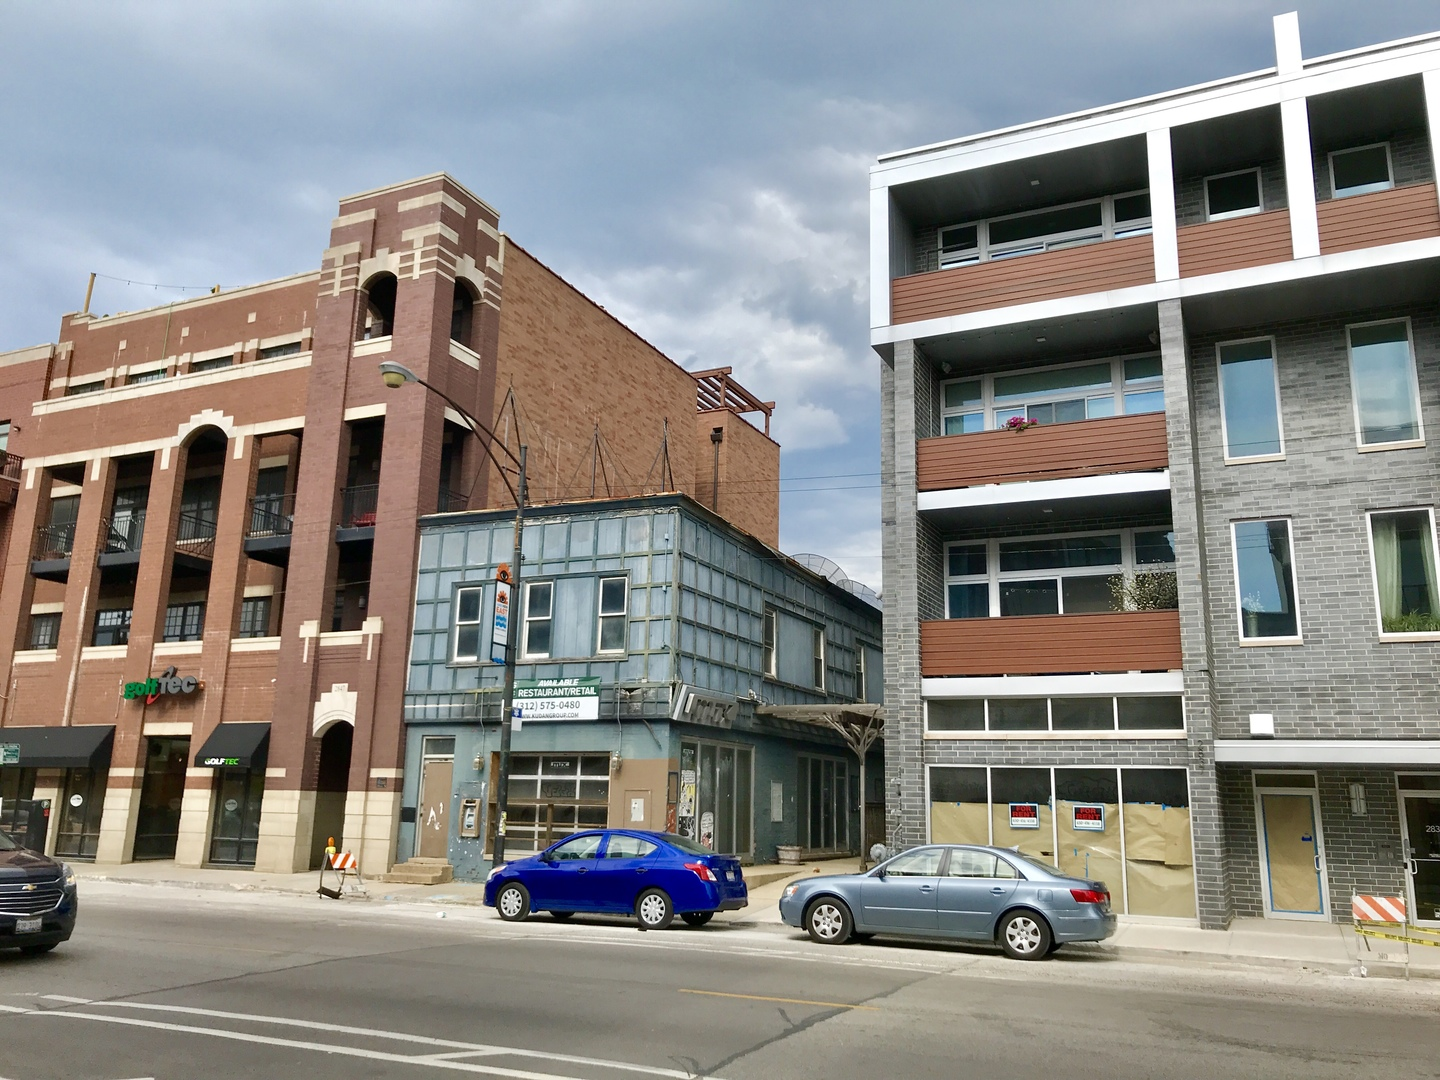 2843 Halsted ,Chicago, Illinois 60657